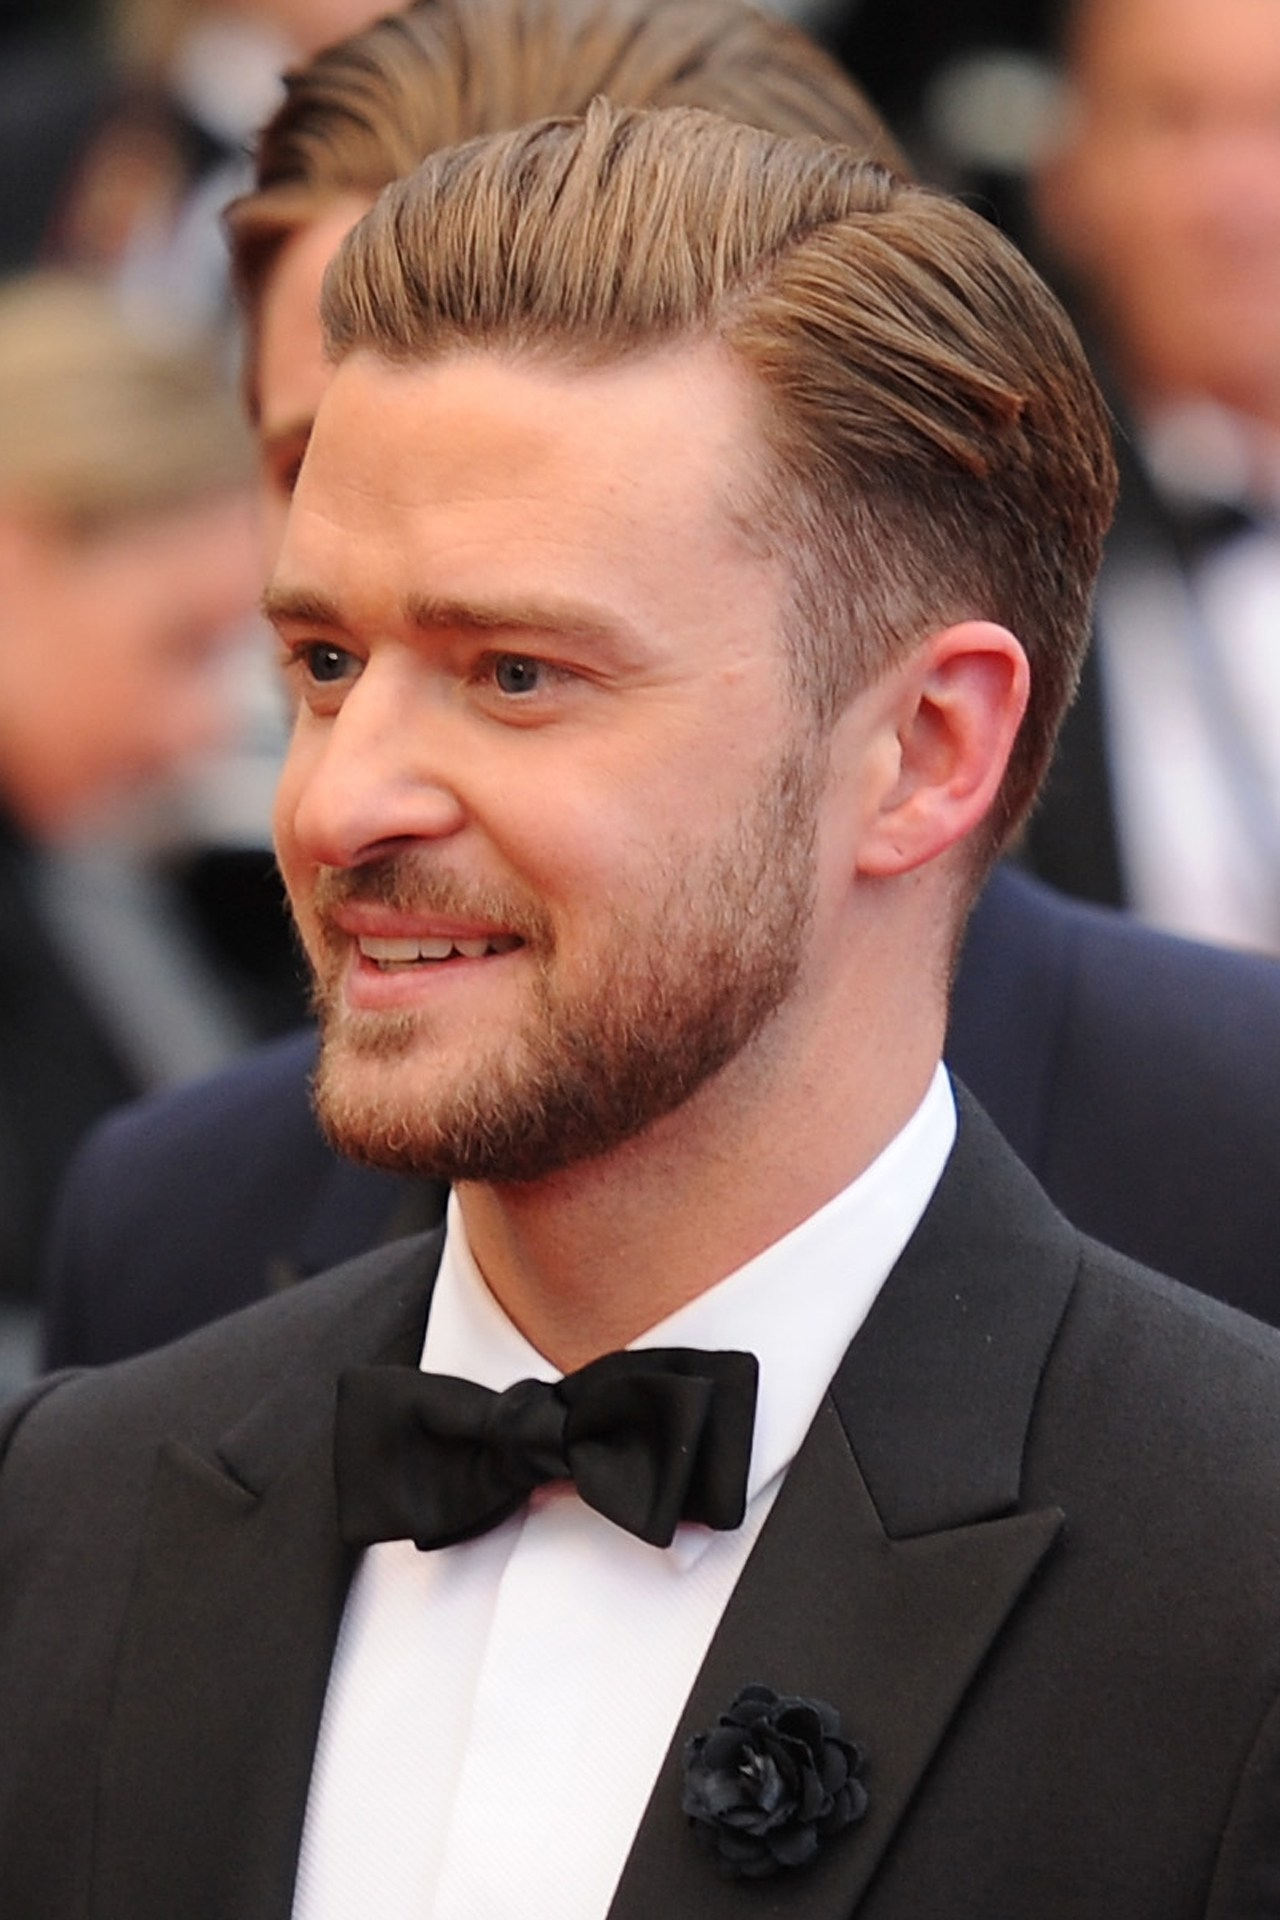 Top 10 Most Outrageous Celebrity Demands -Justin Timberlake